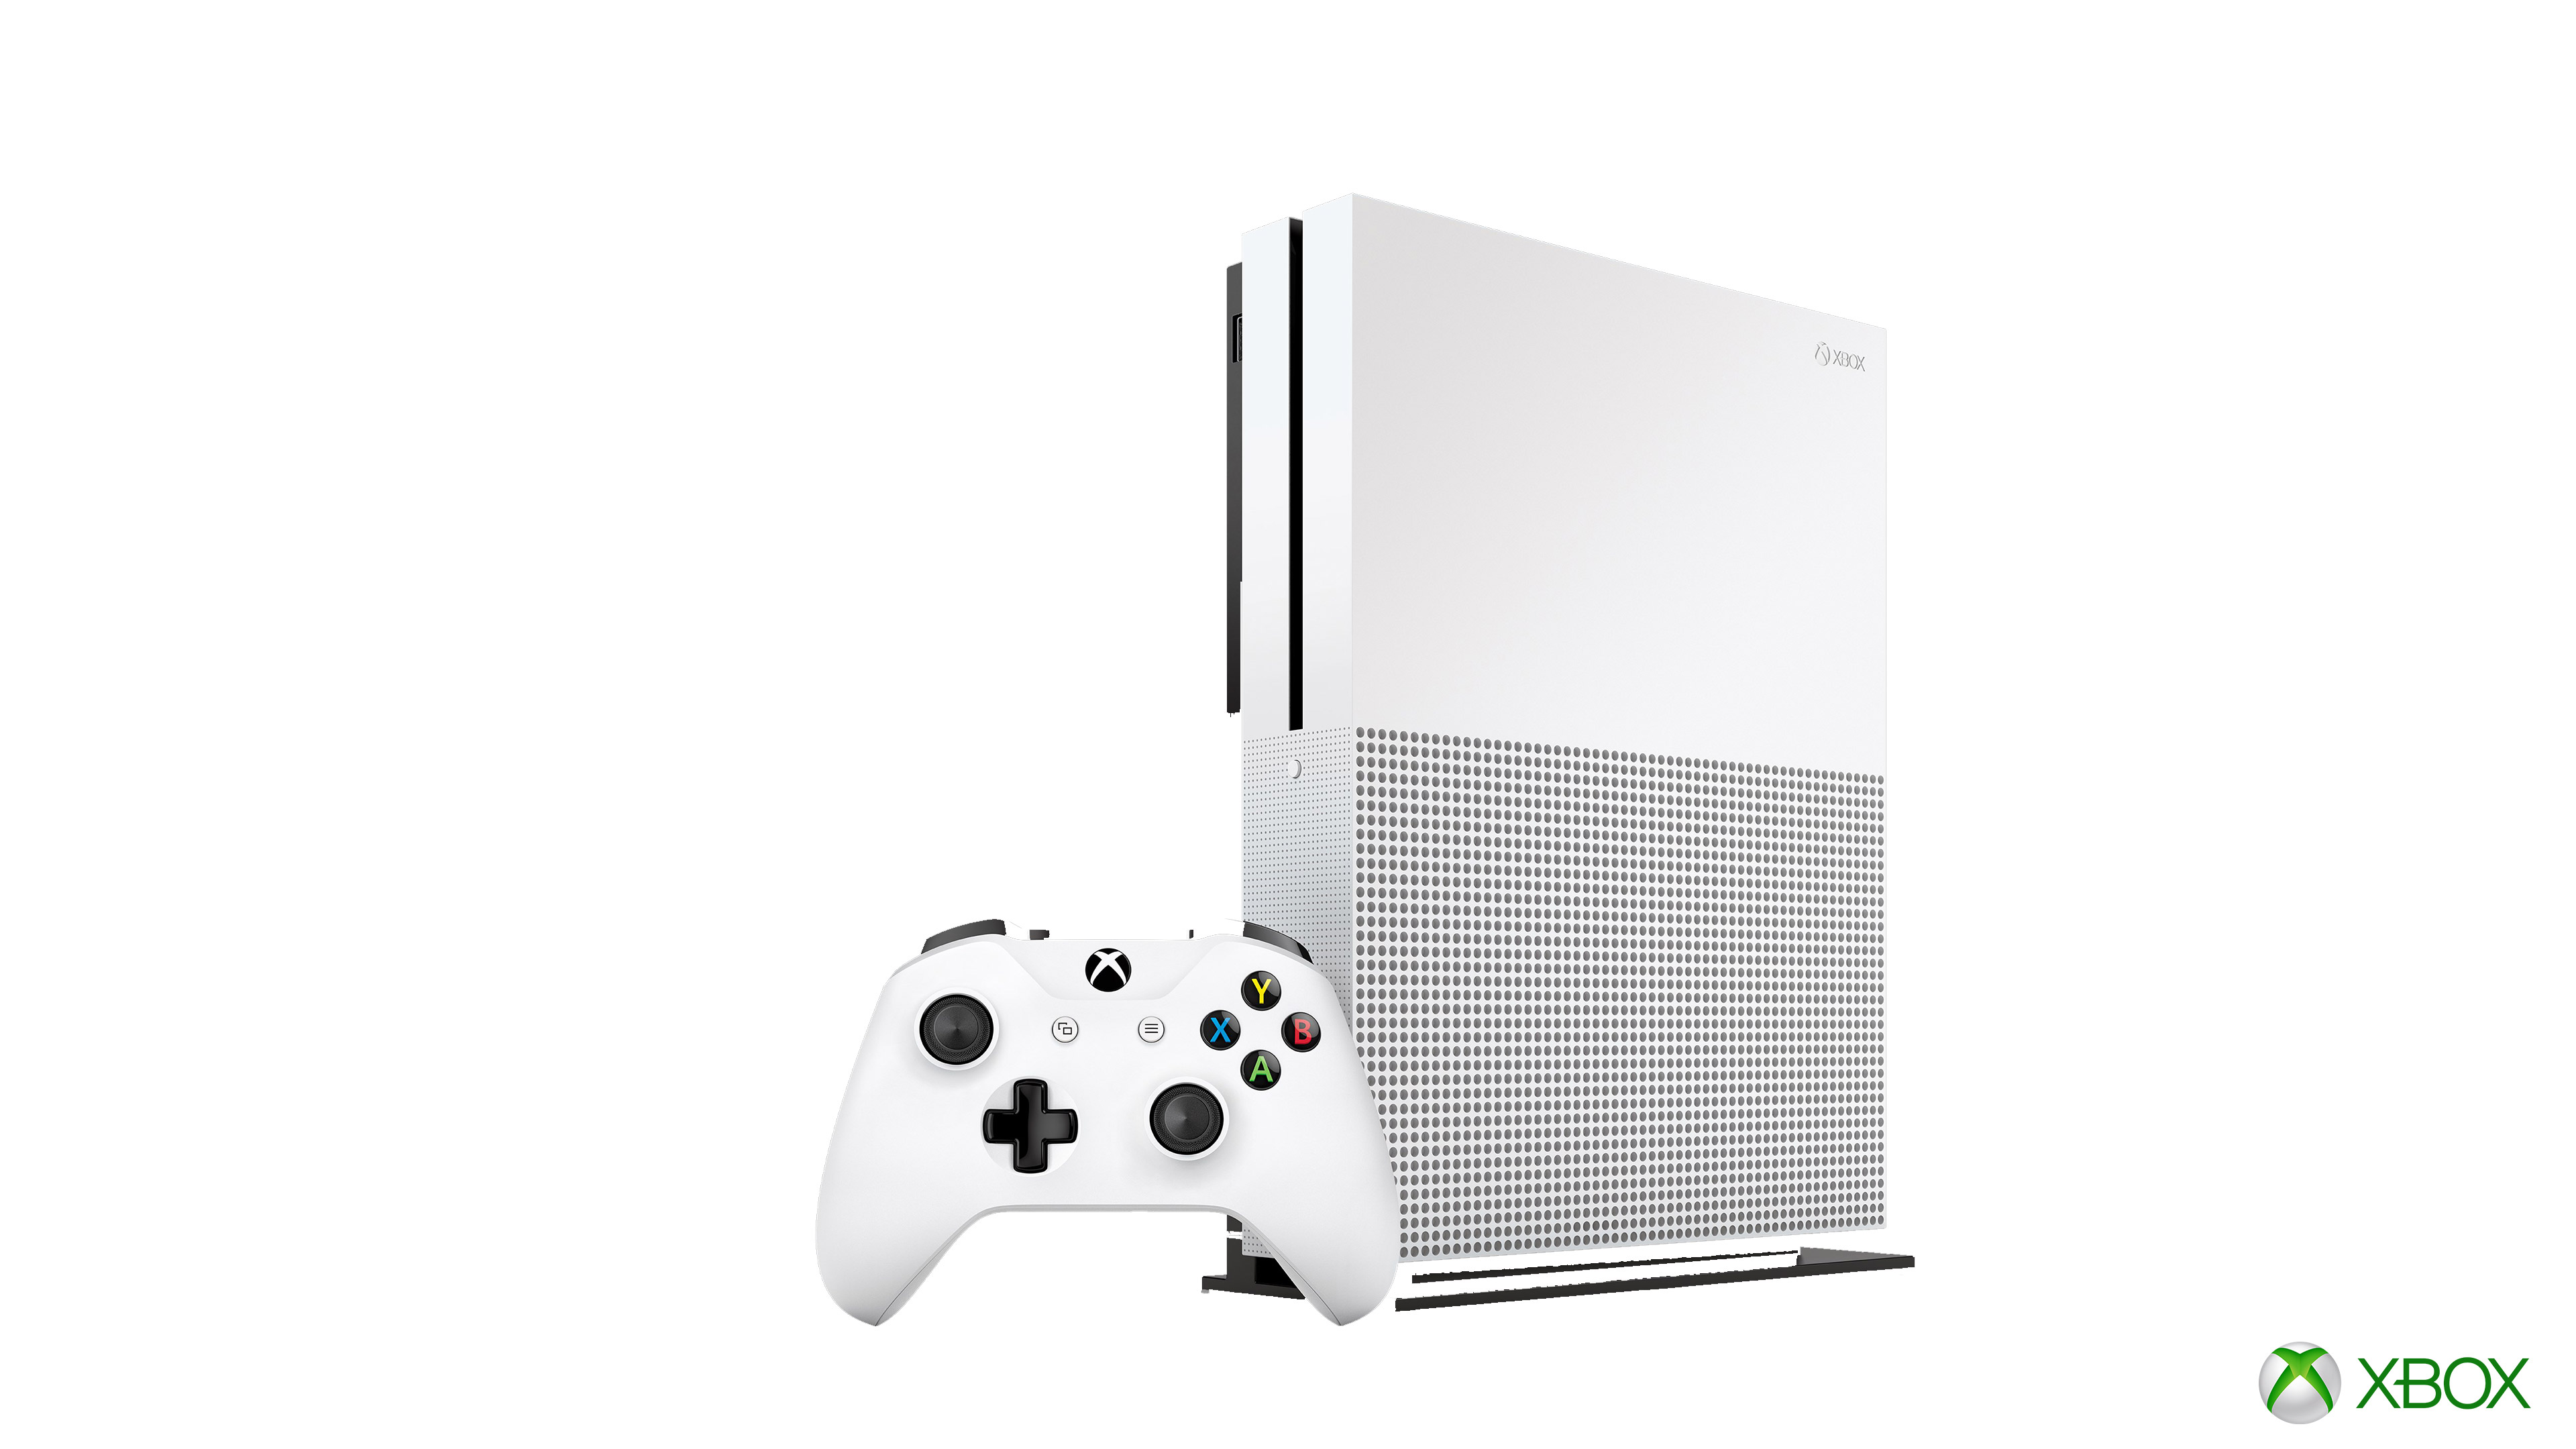 Xbox One S HD Computer 4k Wallpapers Images Backgrounds Photos